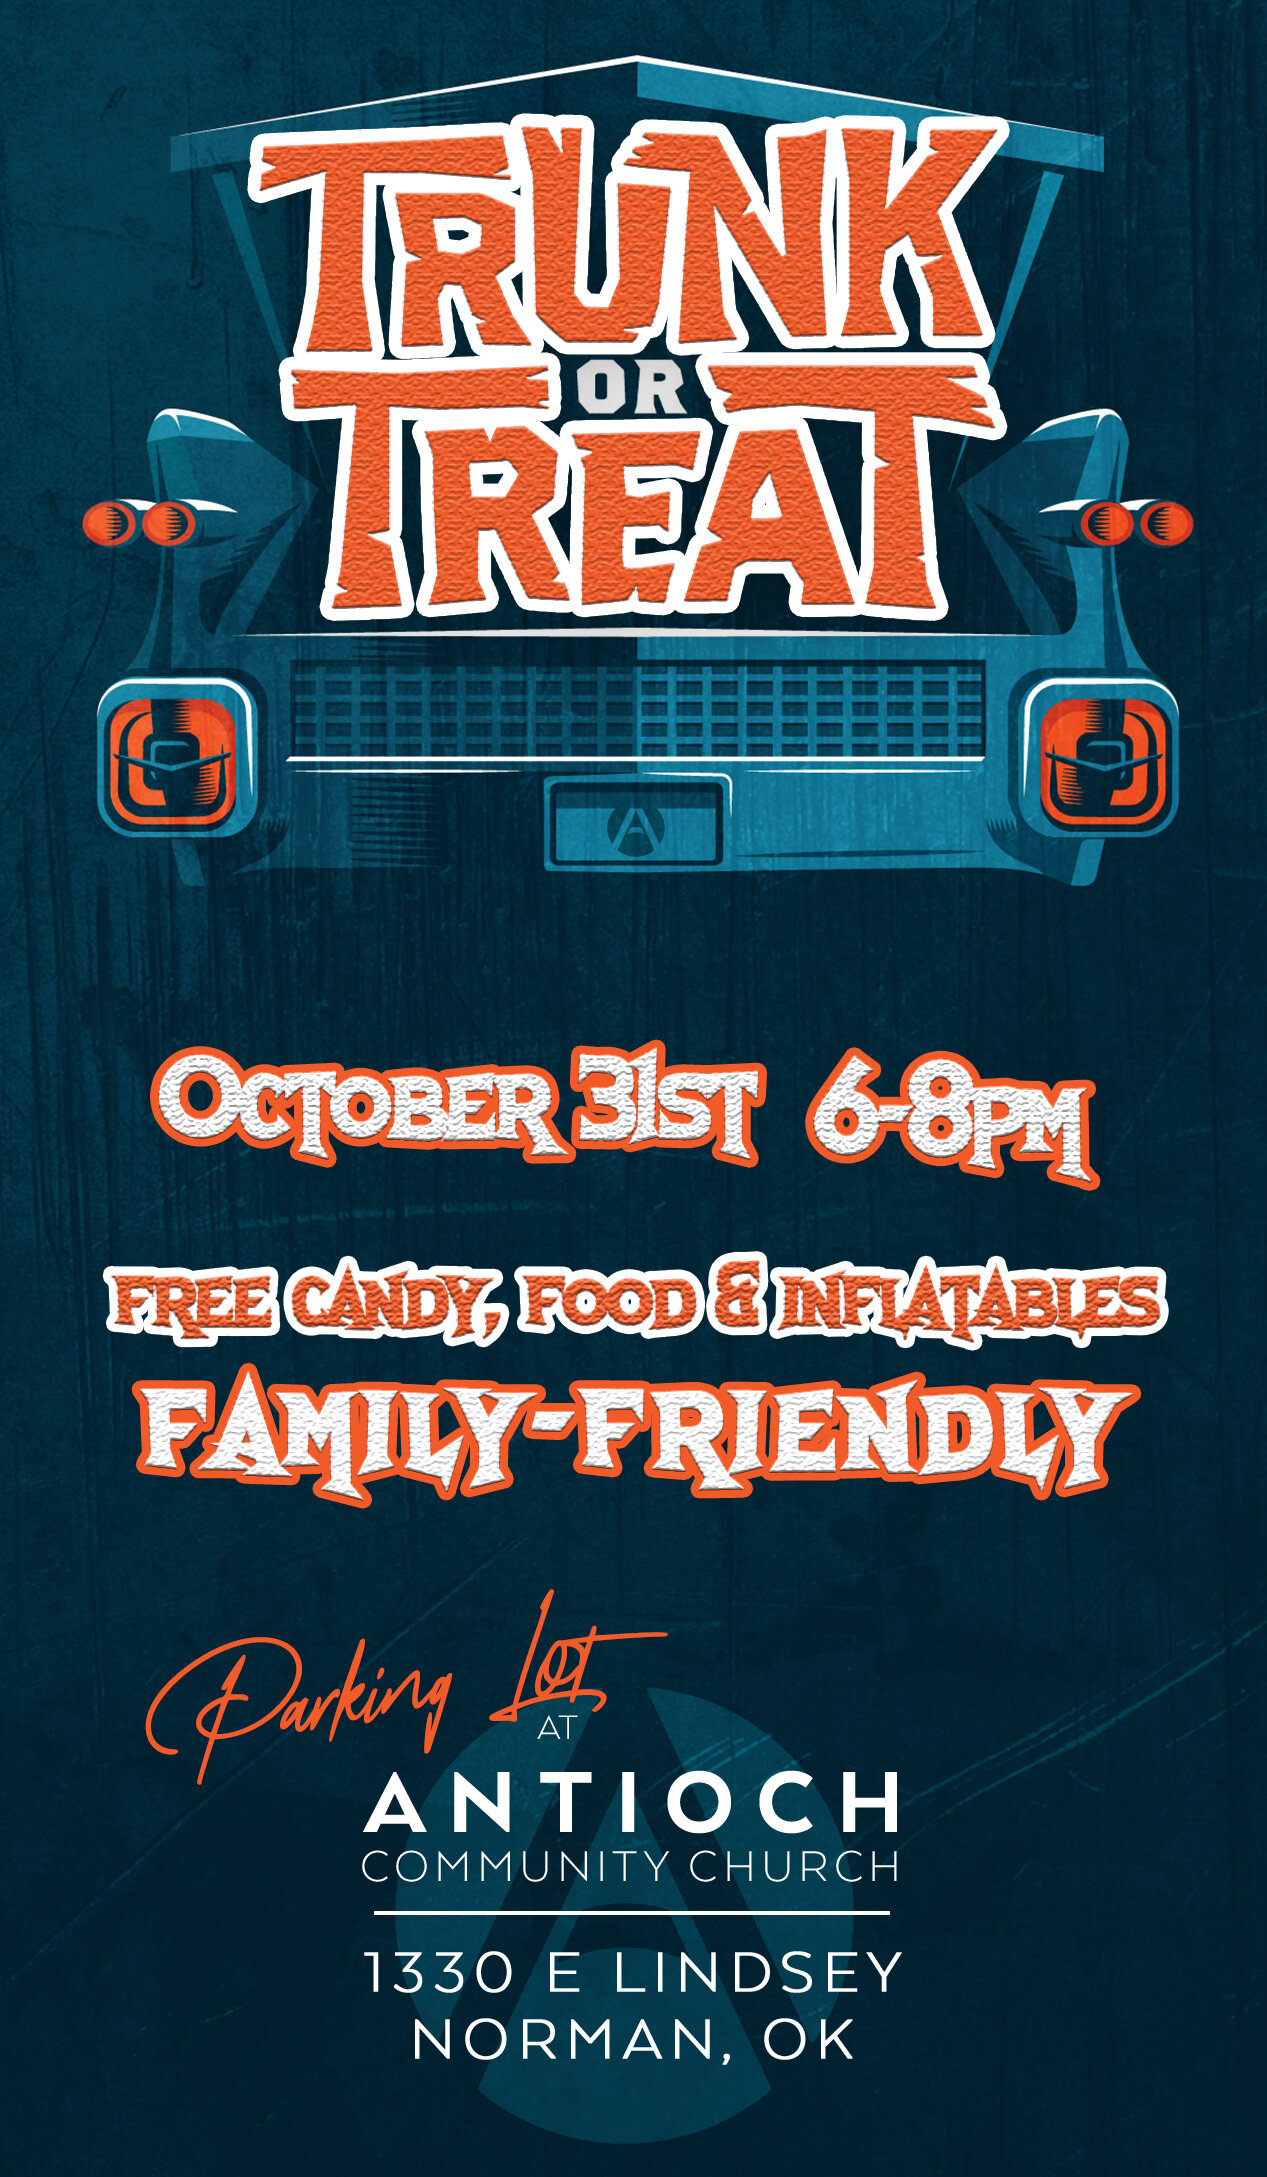 """Trunk or Treat is Antioch's fall party to invite people from the church and our neighborhood to come together for fun, food, inflatables, and lots of sugar highs!  We want to be a fun, inviting, relational presence in our community; to connect people with the love of God. Last year's response was astounding and we're believing this year will be even greater!   We are inviting you to join us in one or more of the following ways: 1. Donate candy or small prizes 2. Grab your family, friends, Lifegroup, business, etc and host a """"trunk"""" 3. ATTEND and bring your friends, family, neighbors, co-workers, etc! 4. Help us pass out flyers in the neighborhood   Additionally, whether you own or work for an organization in our community, we would love for your organization to get involved by sponsoring a trunk, donating food, or any other way they might be willing to help. To sign up to host a trunk, please click below."""